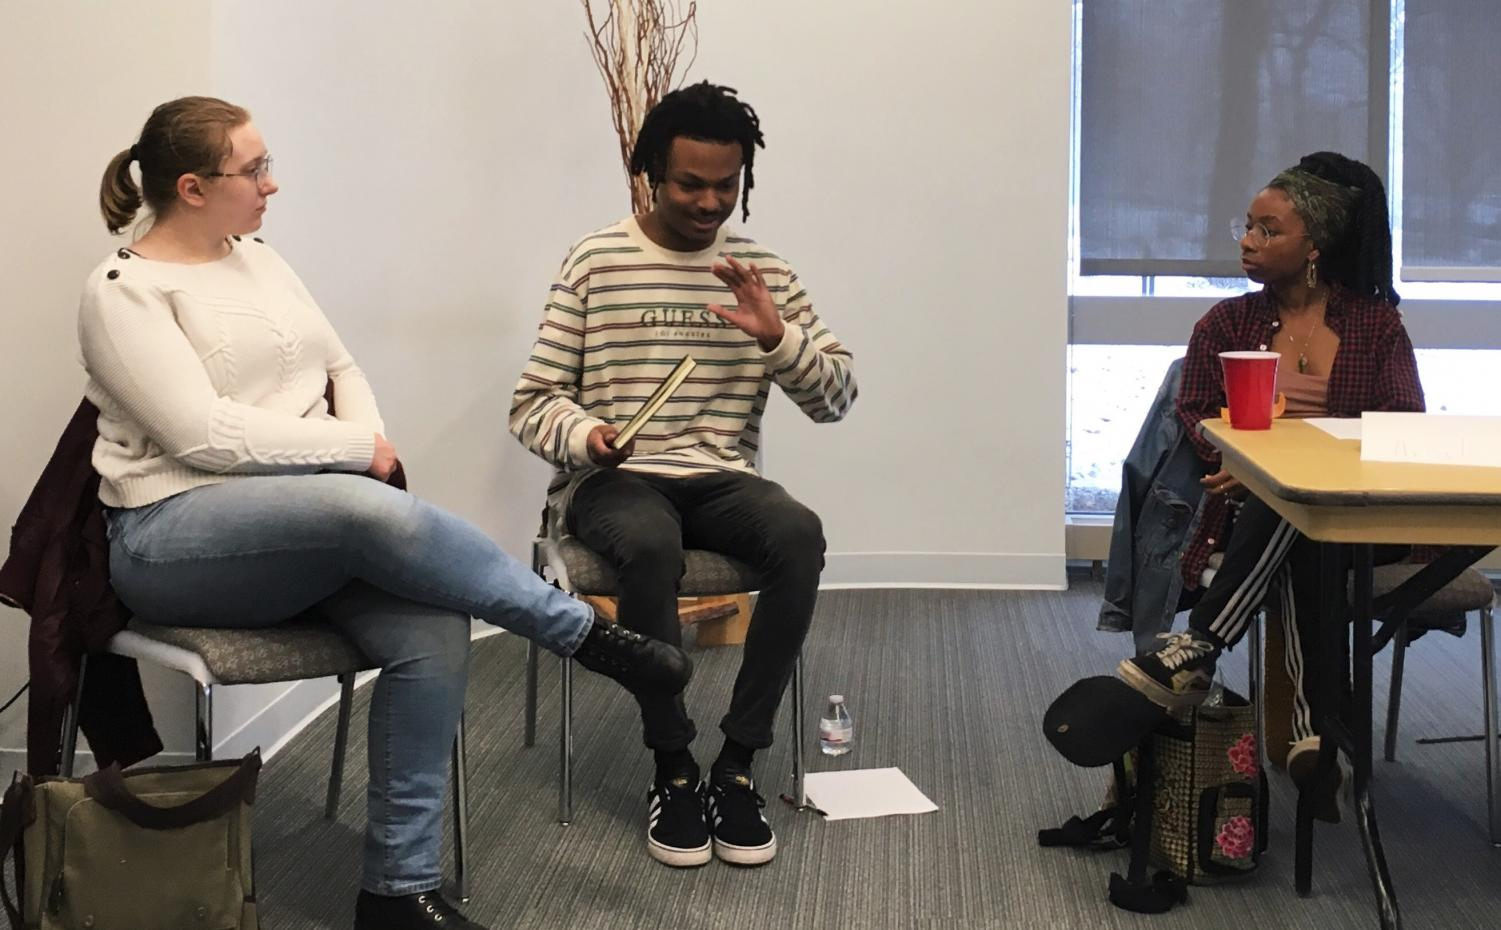 From left, sophomore and co-coordinator Frances Verner; sophomore, co-coordinator and host Stef Holland; and senior and panelist Aria Gilliam speak at the Evening of Entropy panel on April 10.